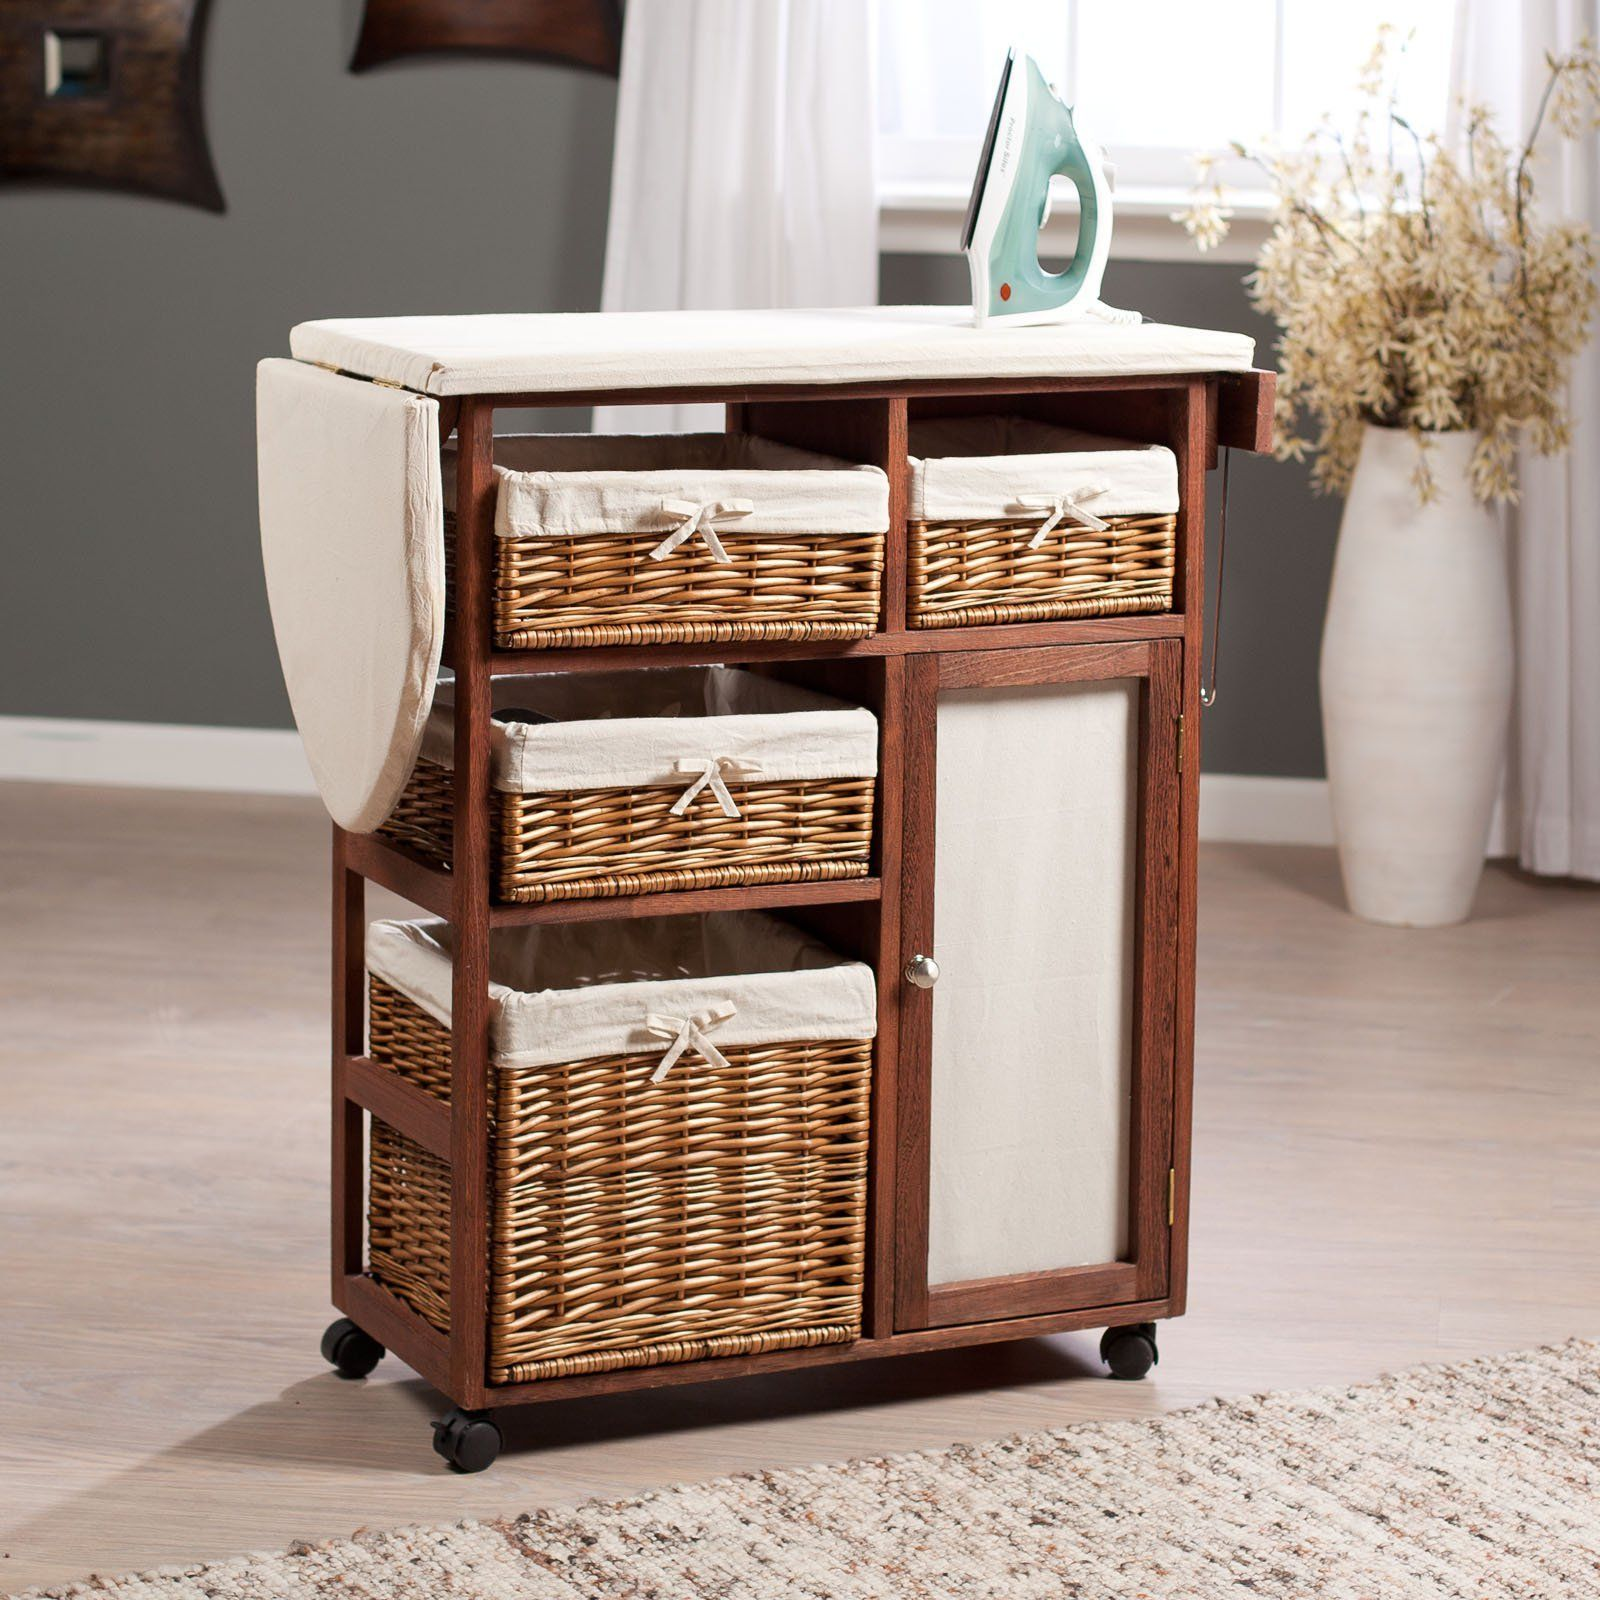 Laundry Room Inspiration Folding Tables